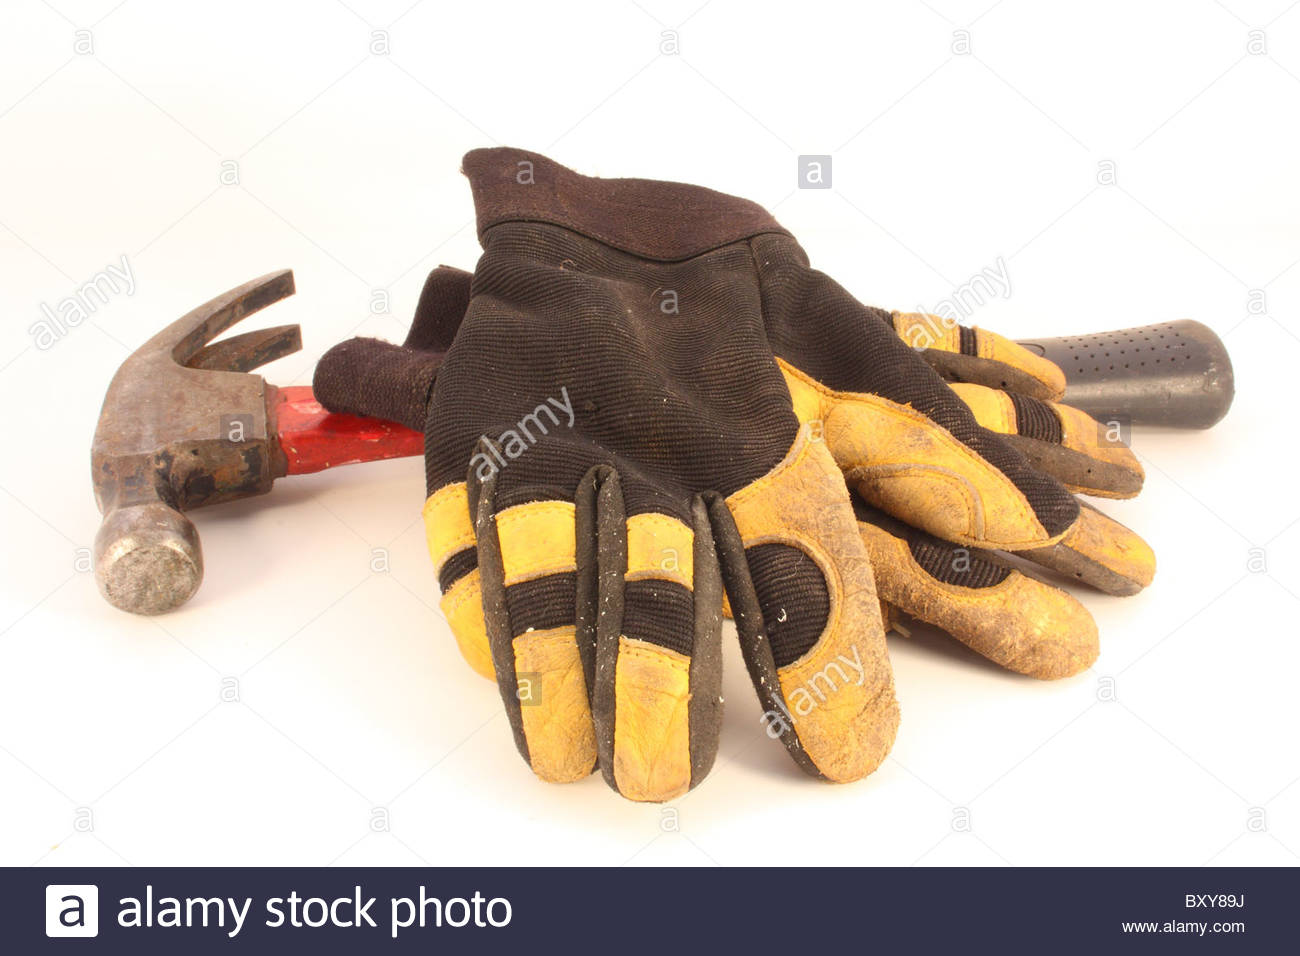 leather work gloves with claw hammer - Stock Image